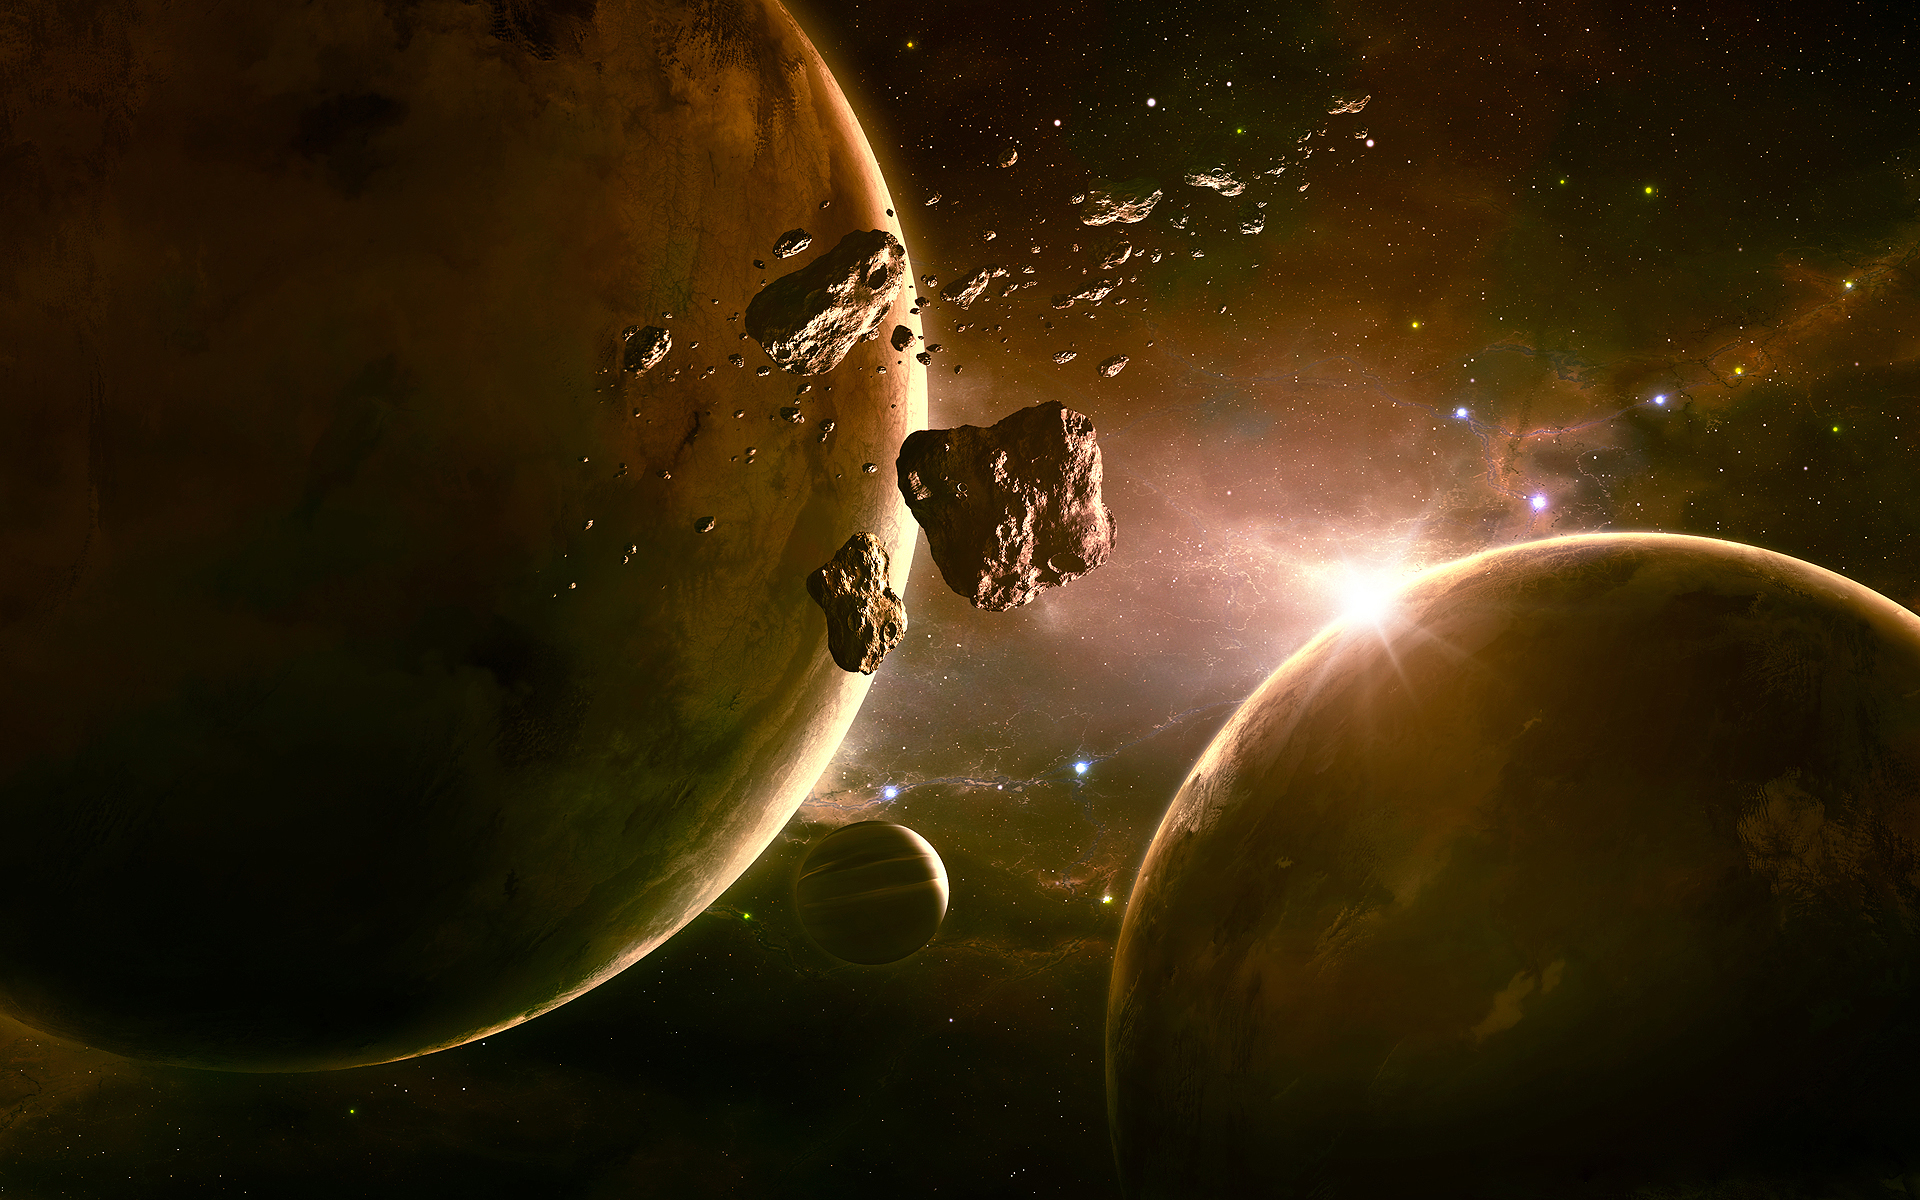 asteroid planets - HD1920×1200